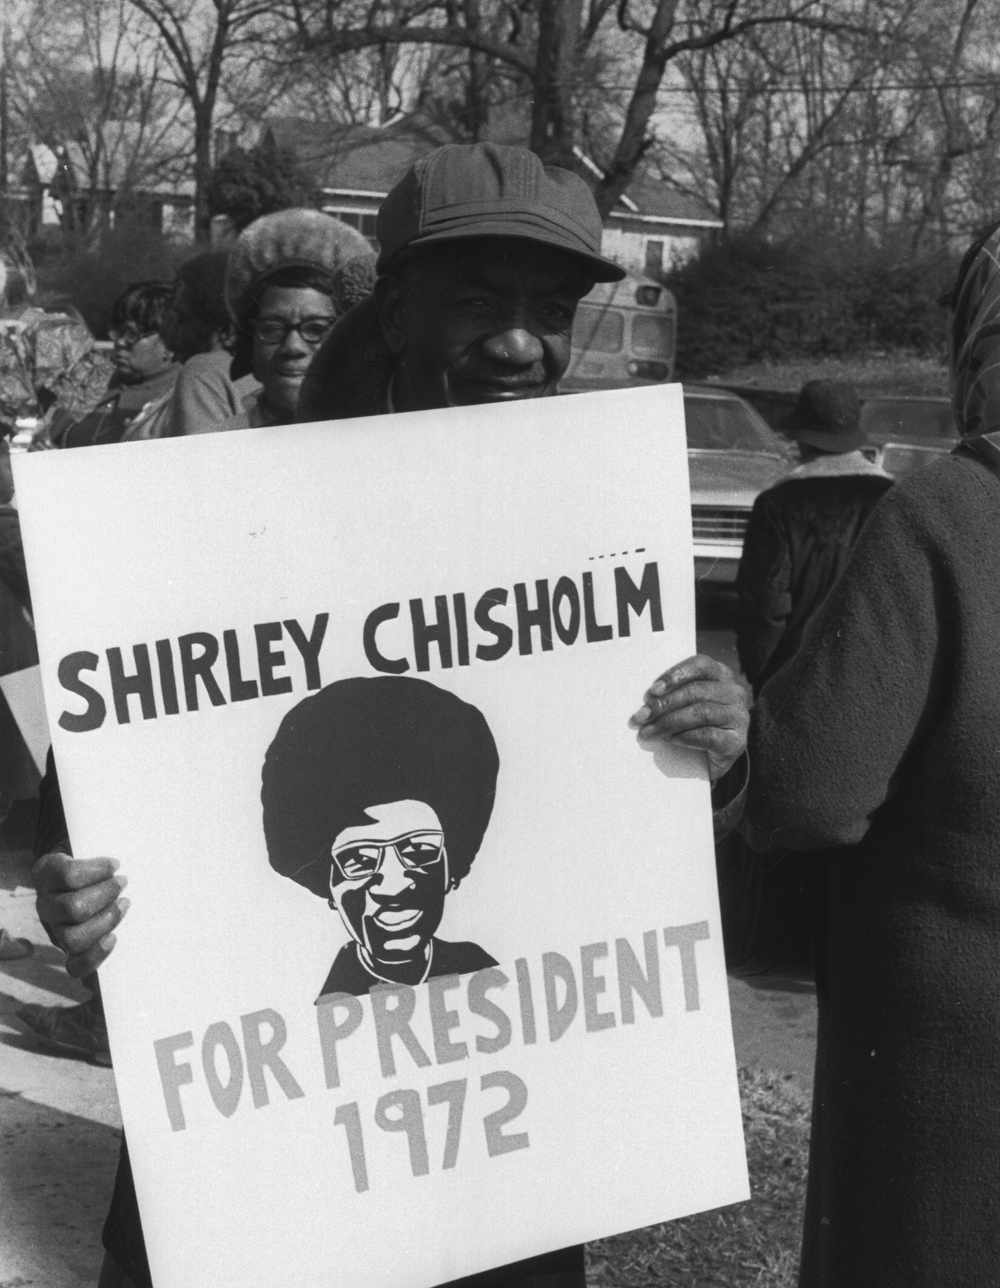 Campaigning for Shirley Chisholm, Summerhill. Photograph by Boyd Lewis. Boyd Lewis Collection. Courtesy of the Kenan Research Center at the Atlanta History Center.